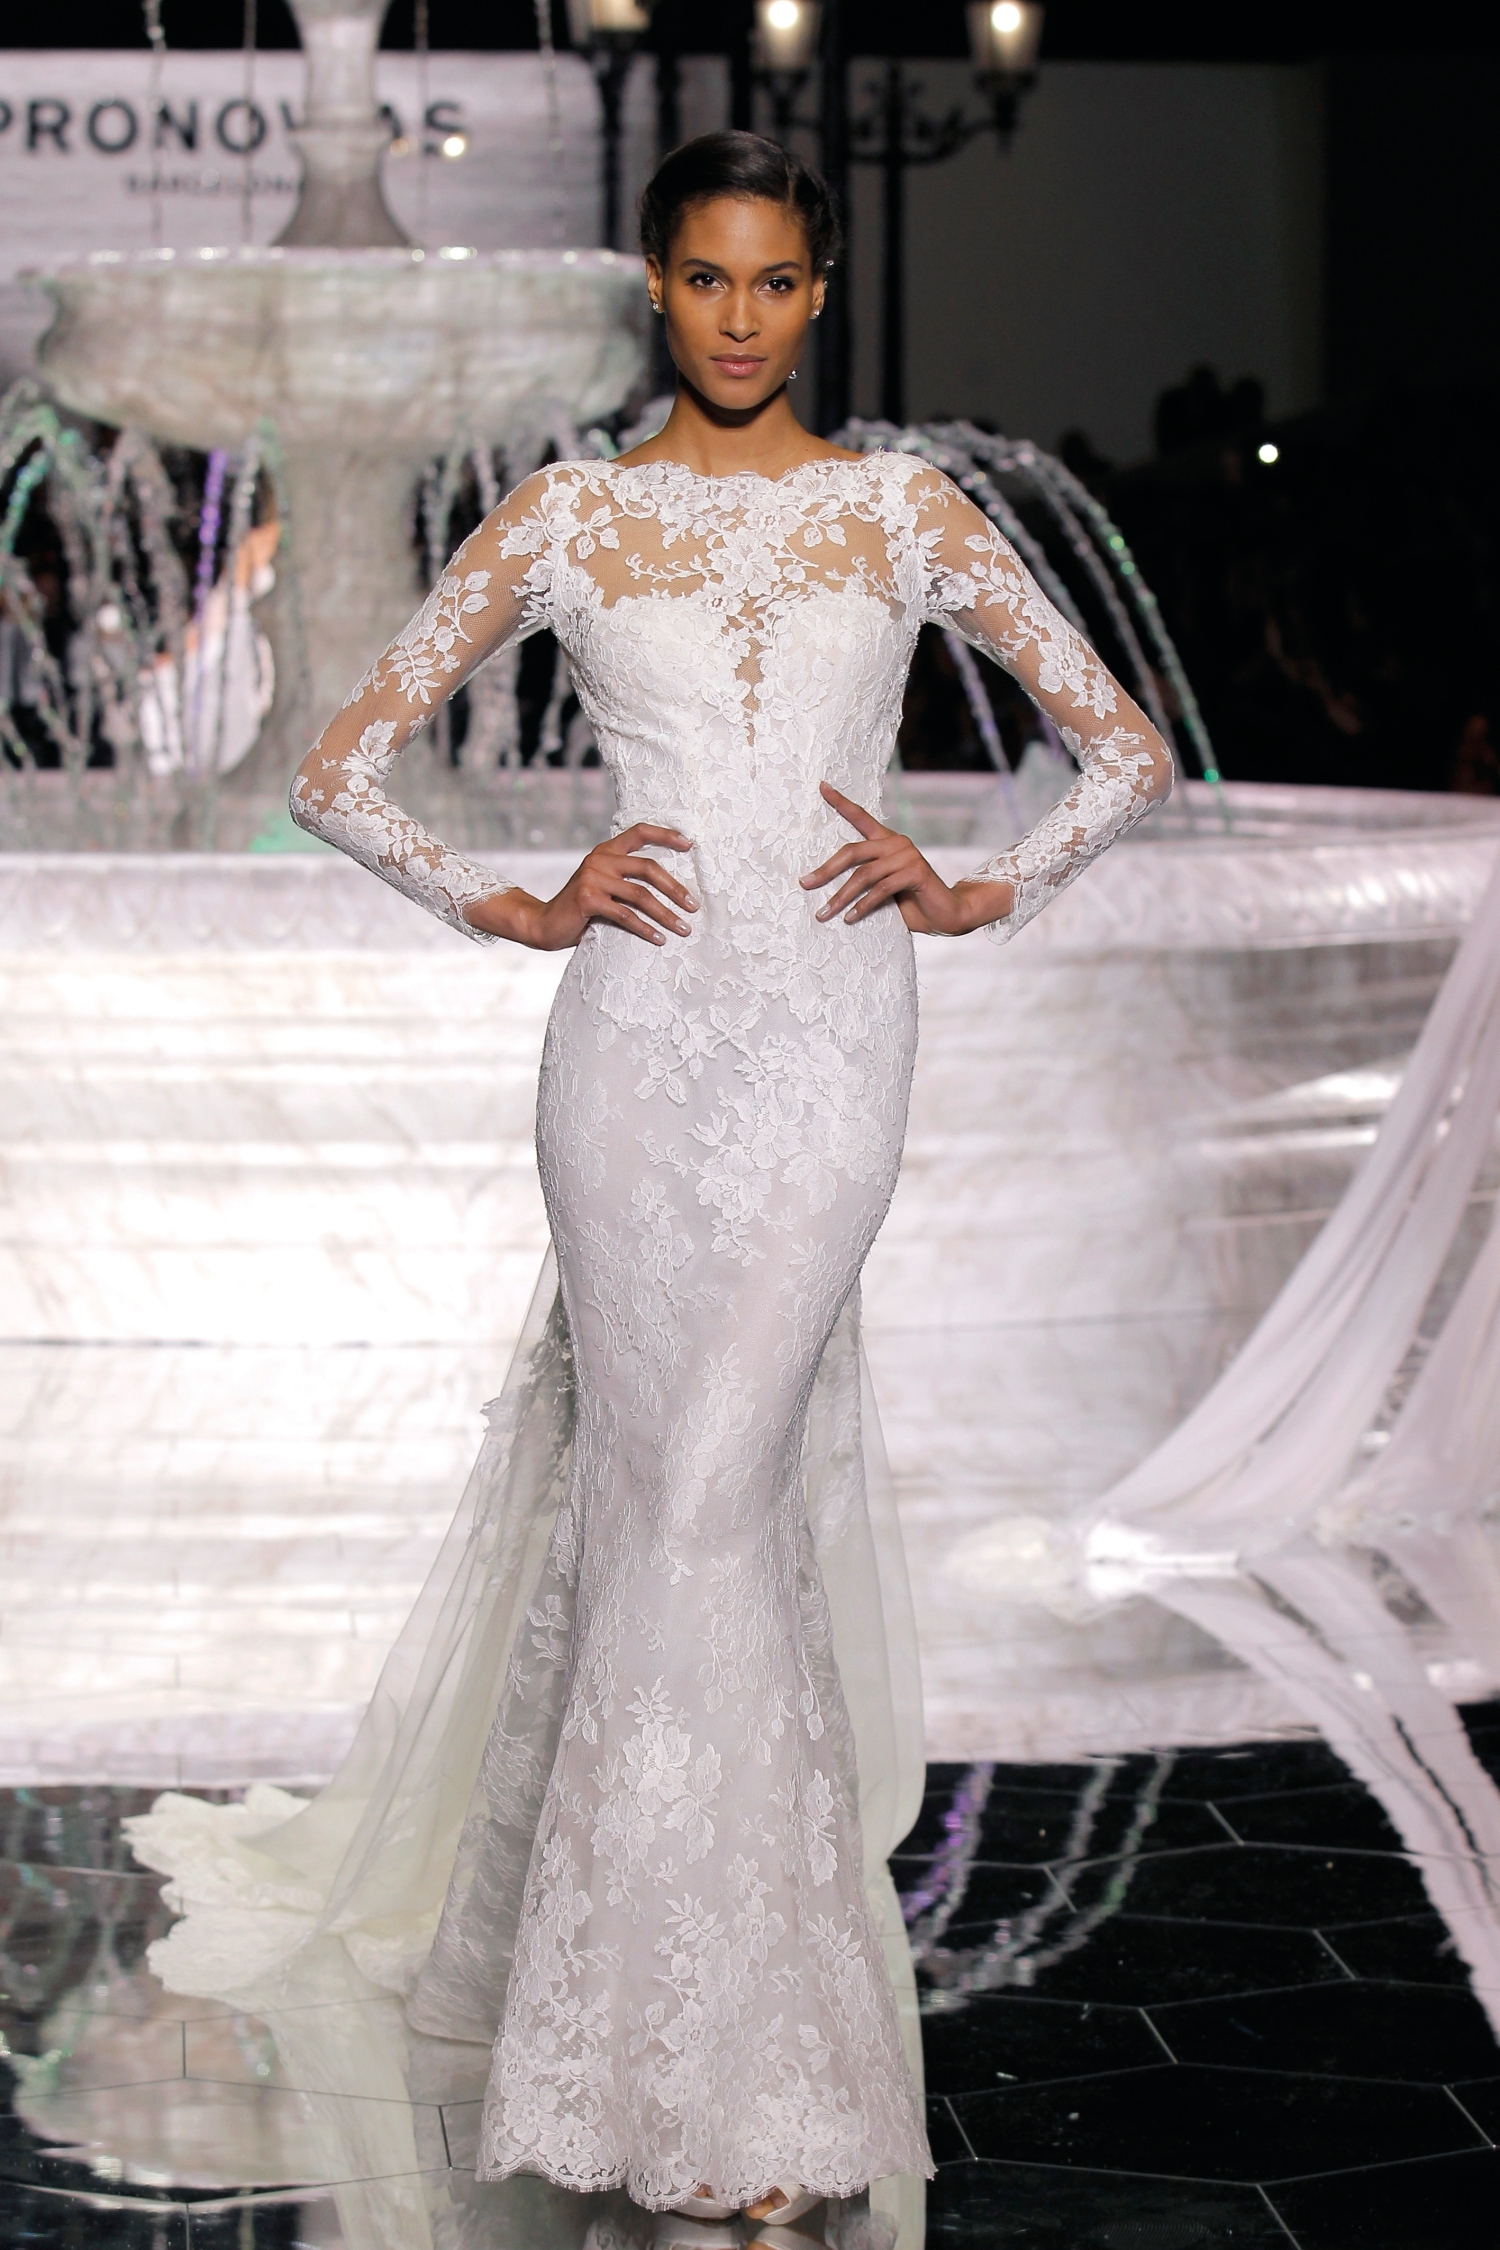 1-PRONOVIAS FASHION SHOW_ Romeo